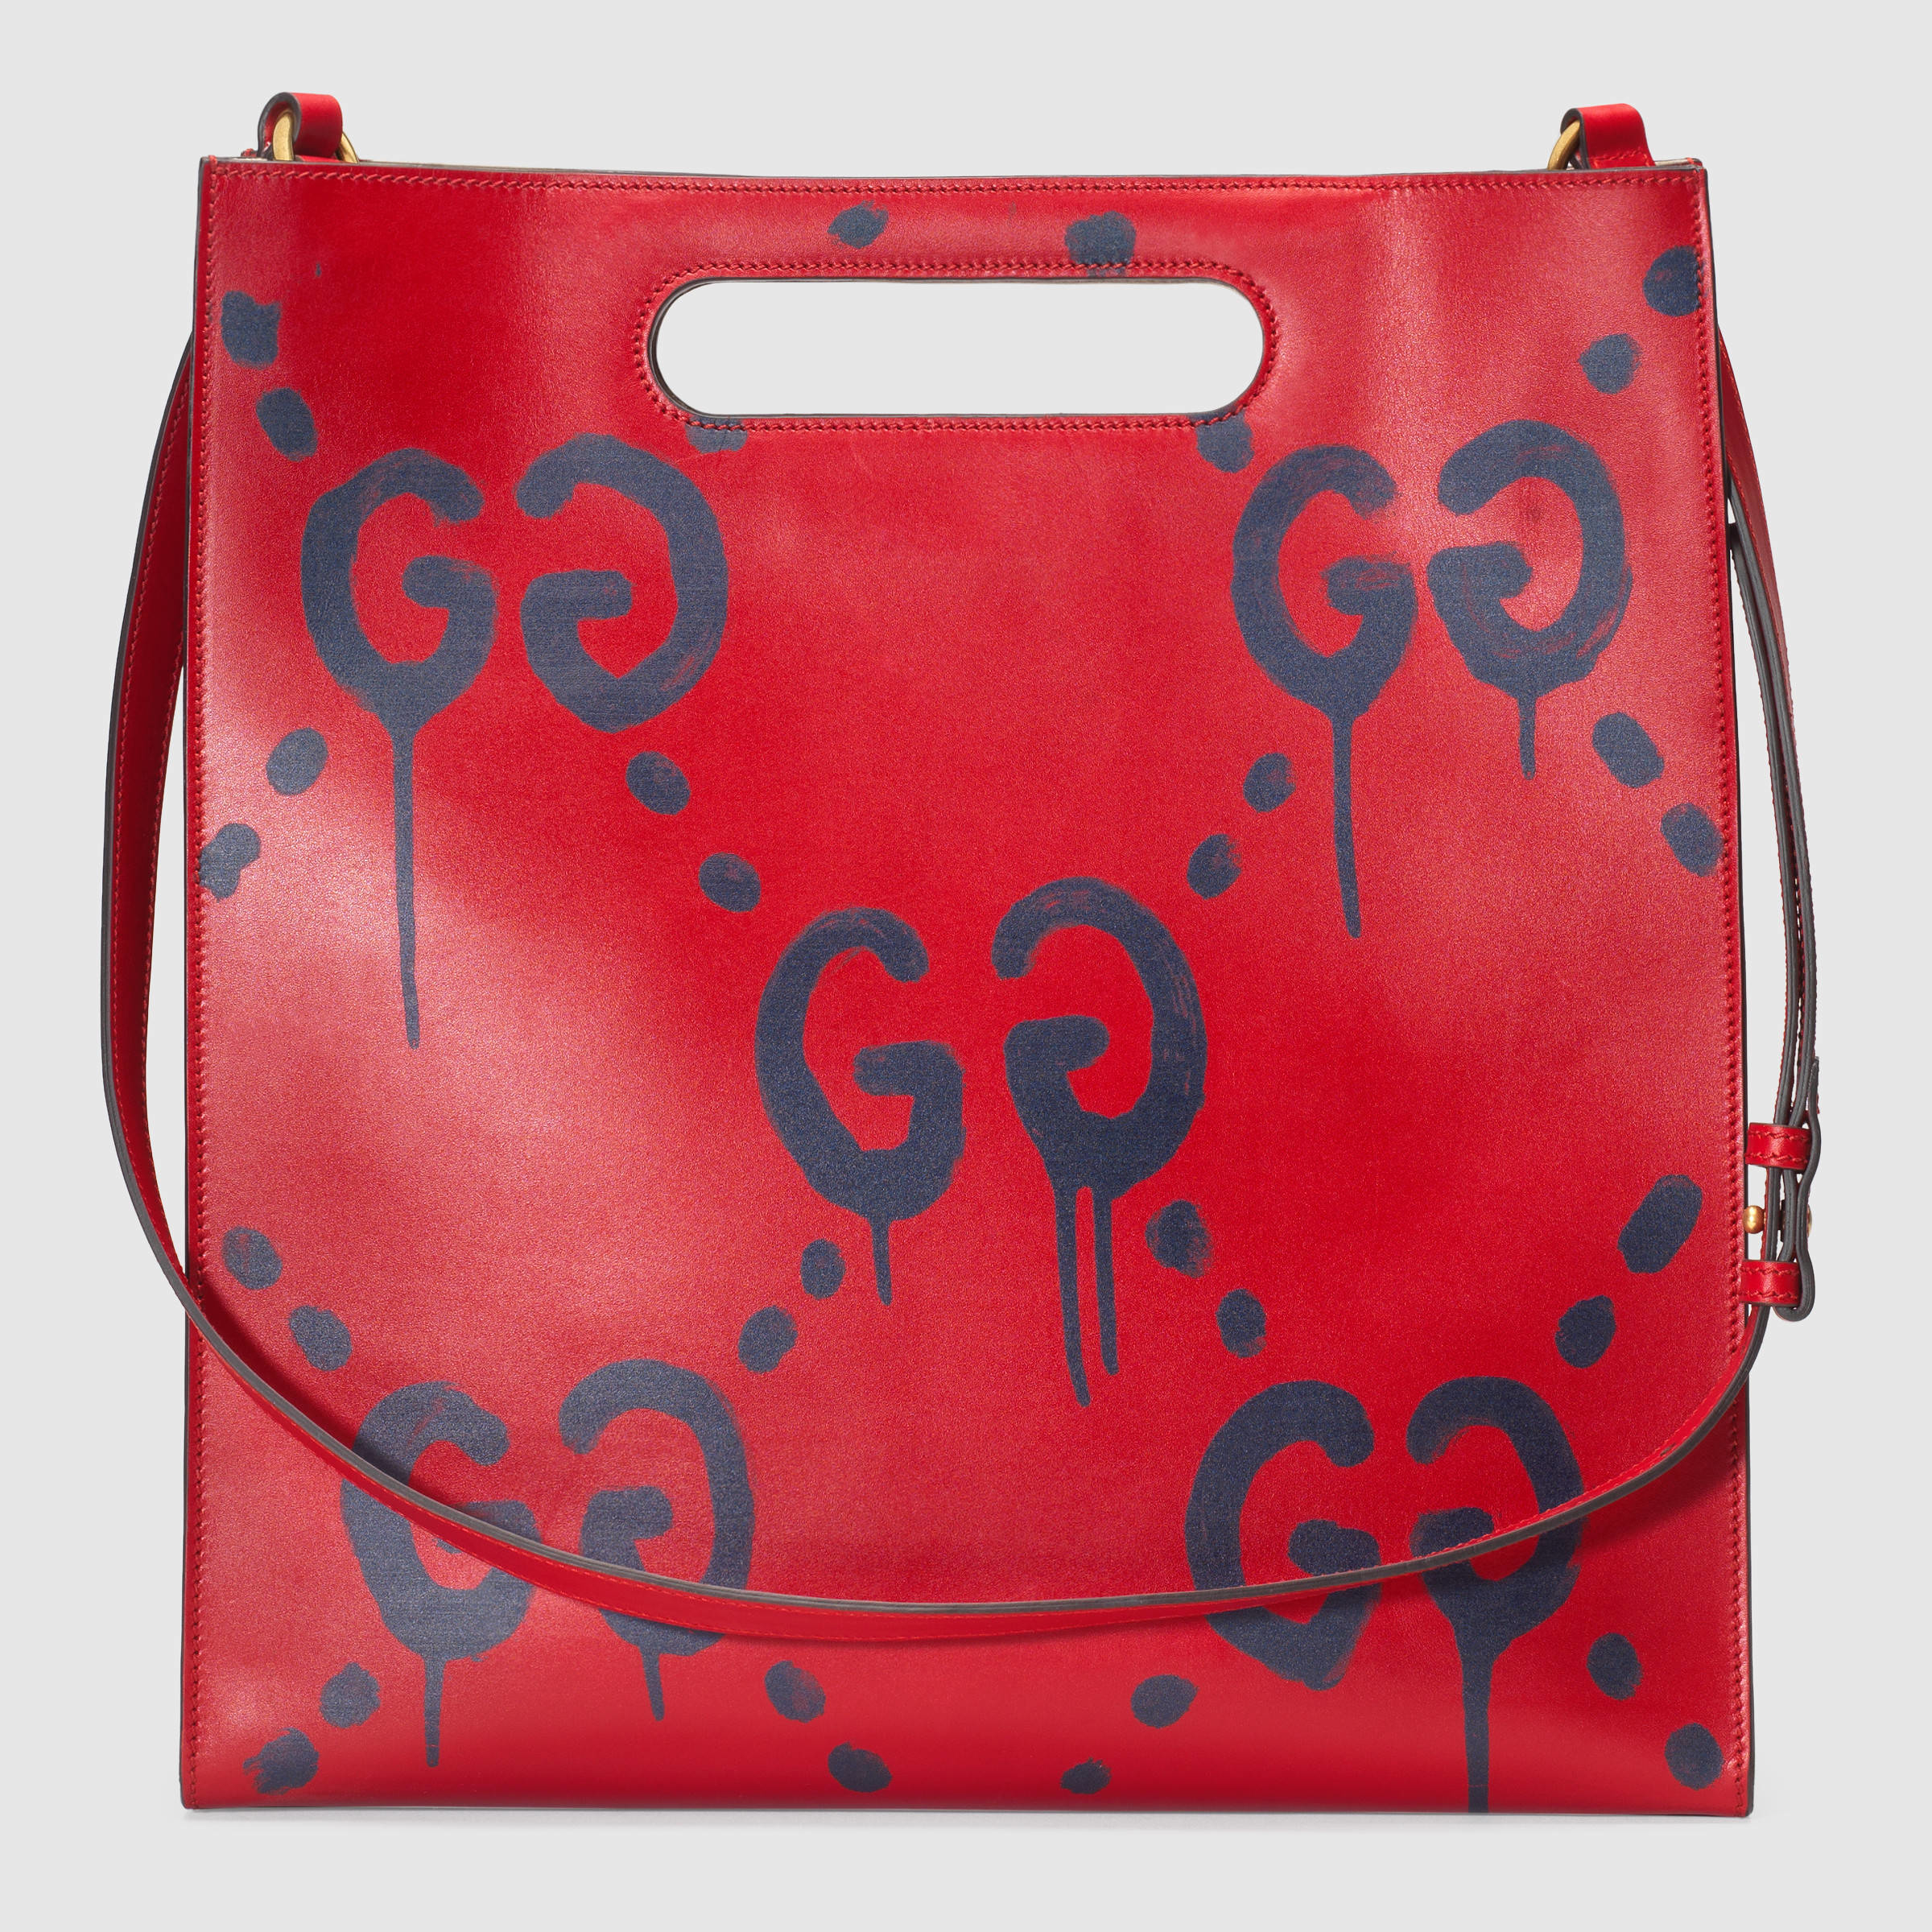 5fafab2b2a4e Gucci Tote Handbags Ghost | Stanford Center for Opportunity Policy ...